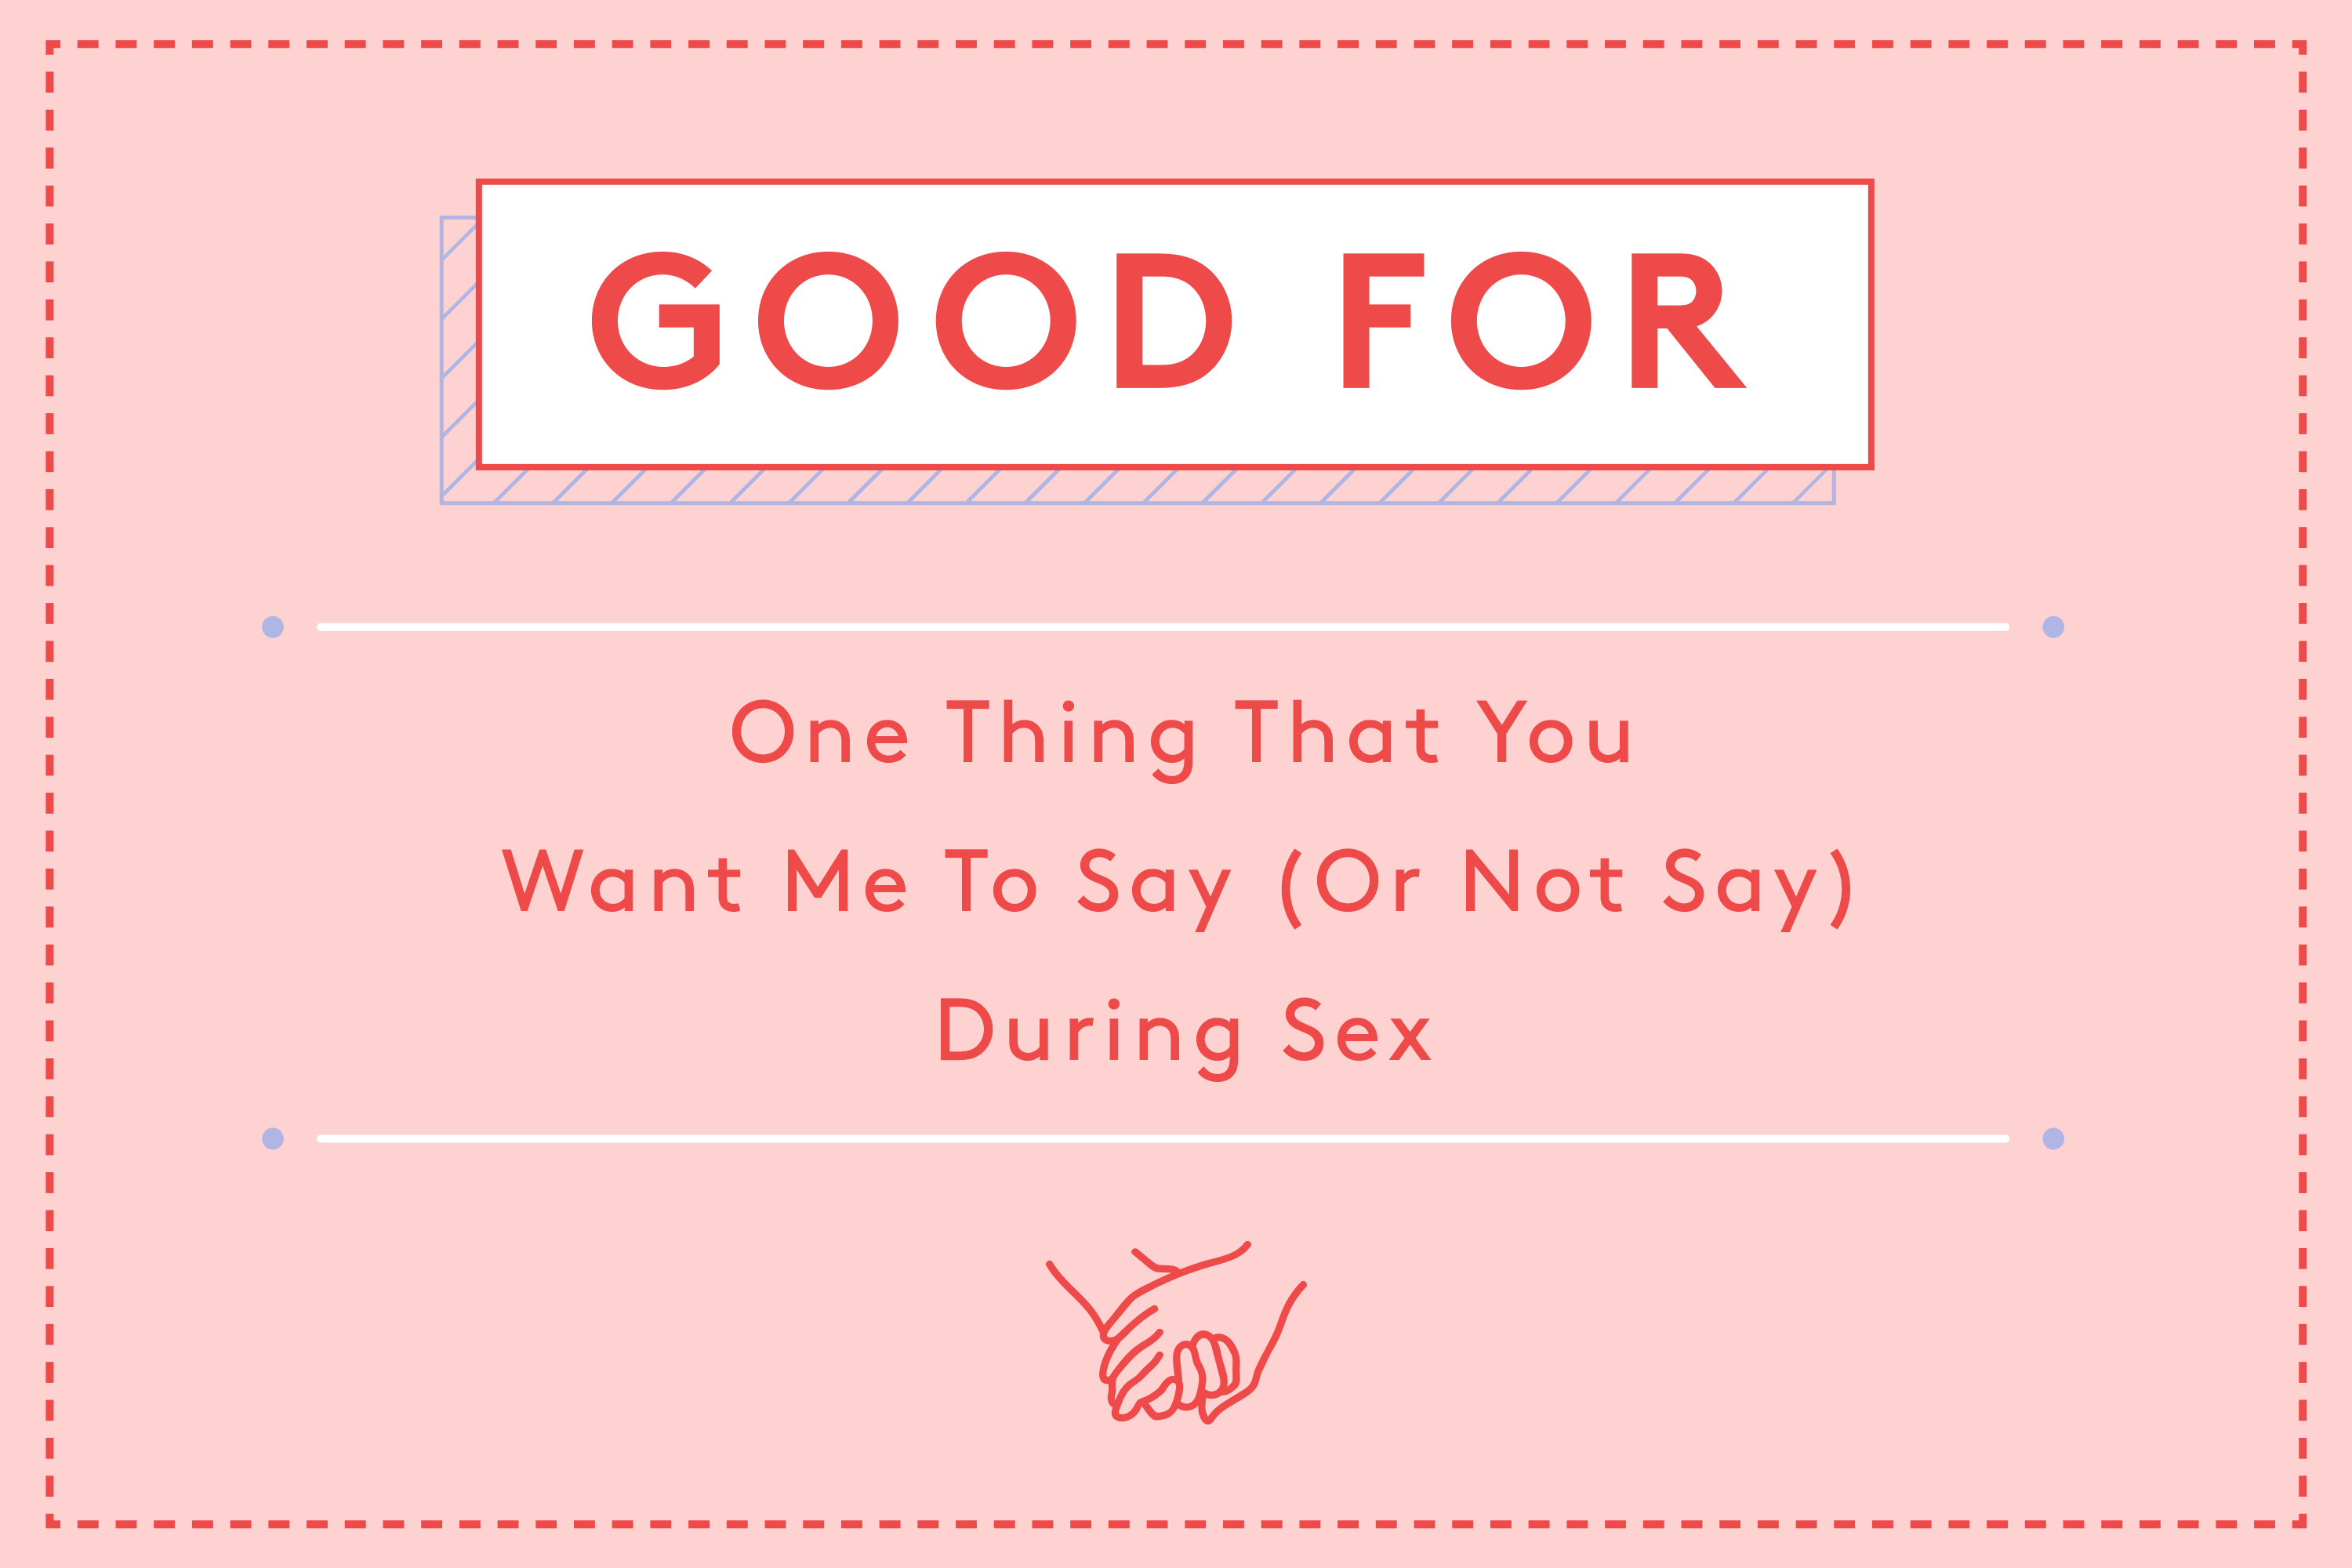 Sex And Love Coupons For Him Her Relationship Gifts